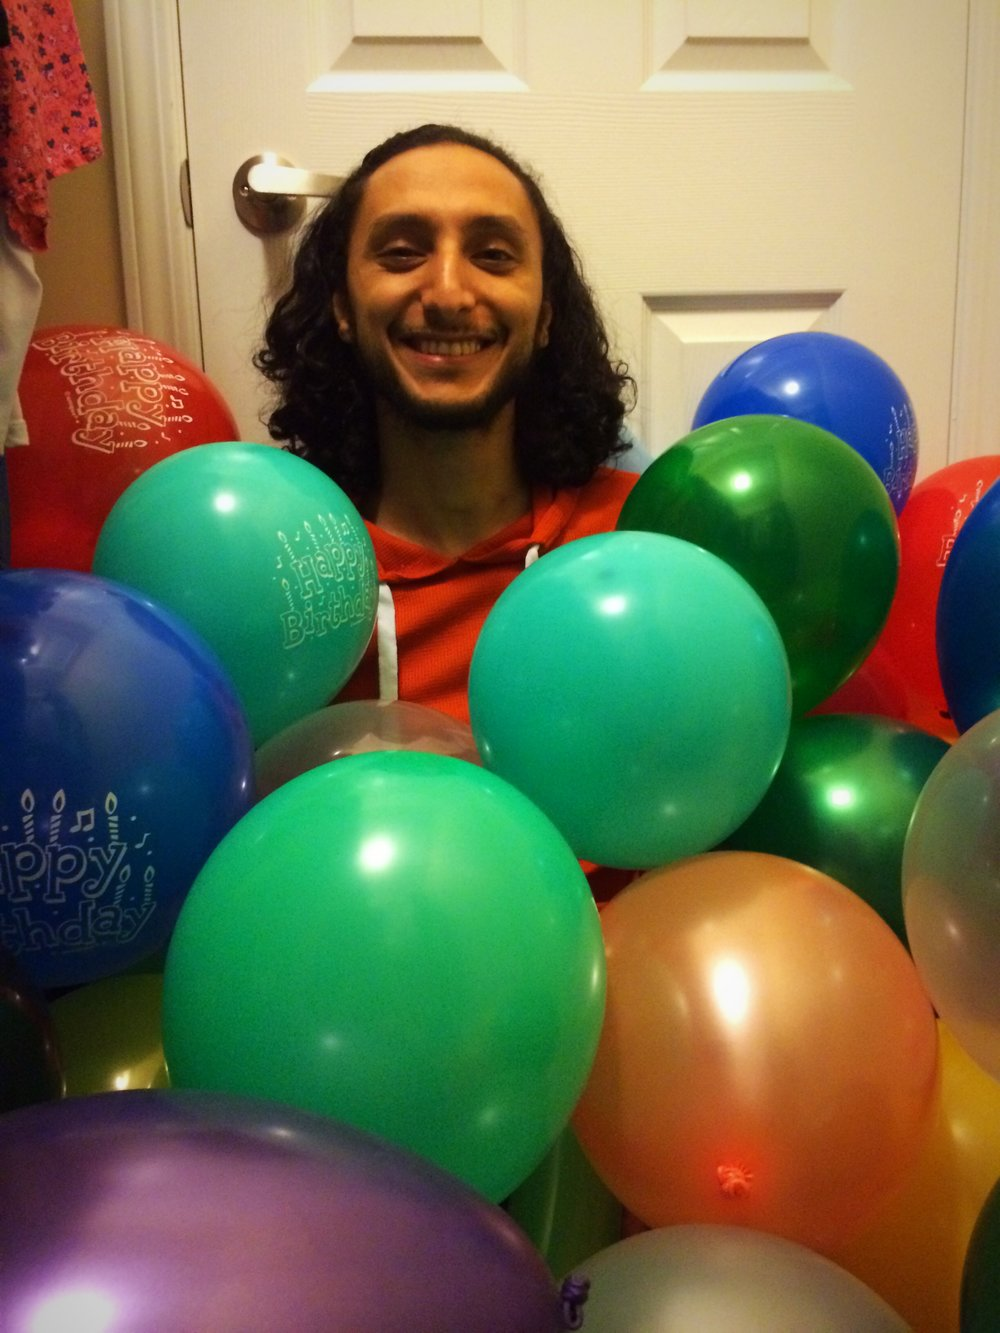 It a tradition. On his birthday I fill the closet with balloon and hide in it